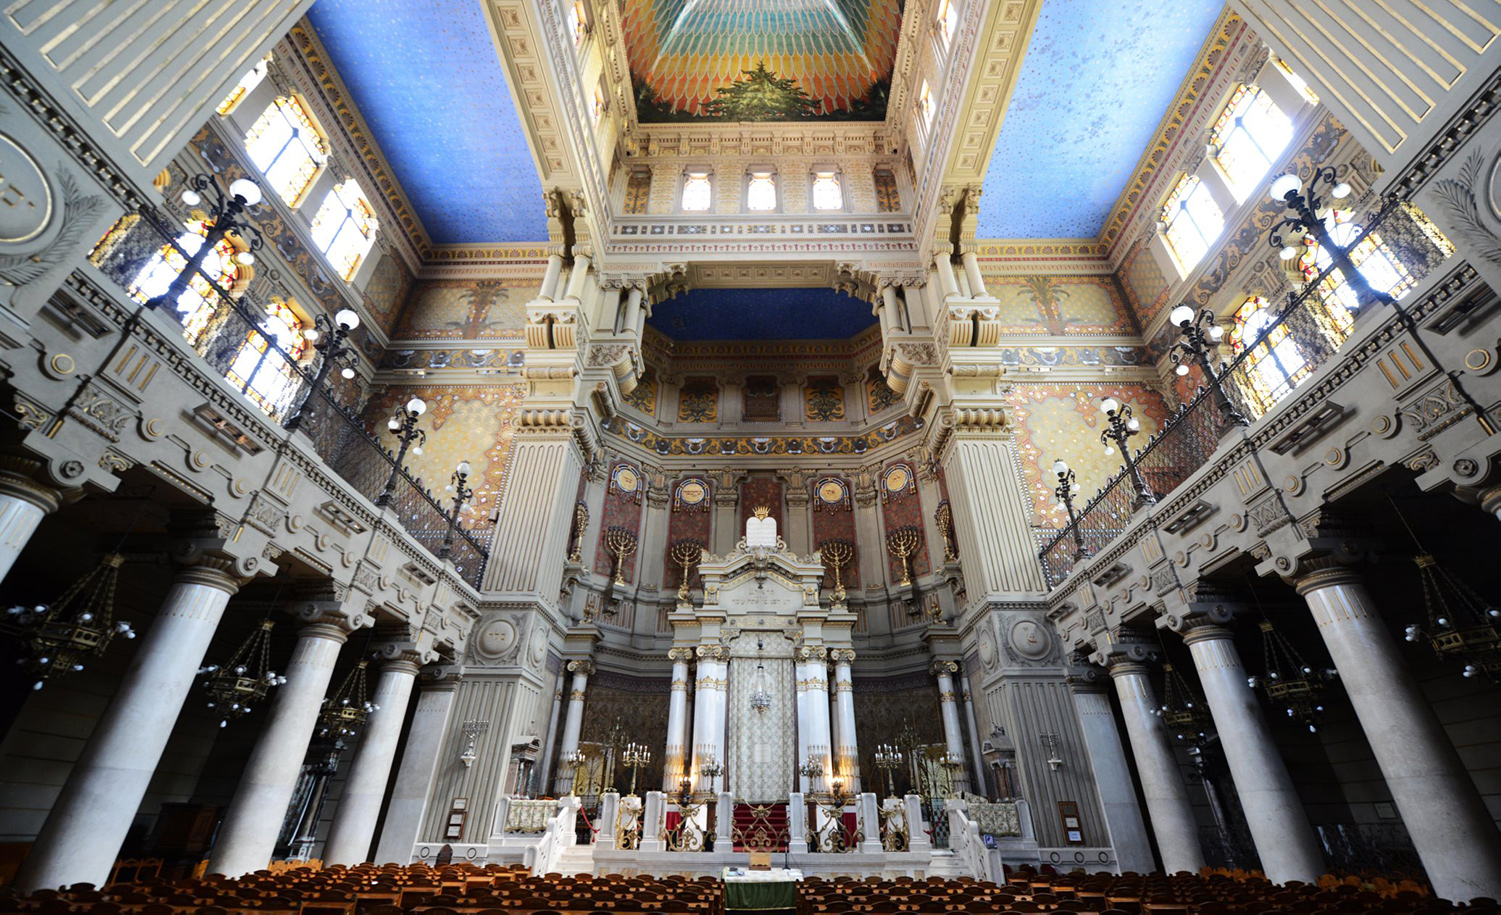 Inside the Great Synagogue of Rome. Boaz Rottem/Alamy Stock Photo.